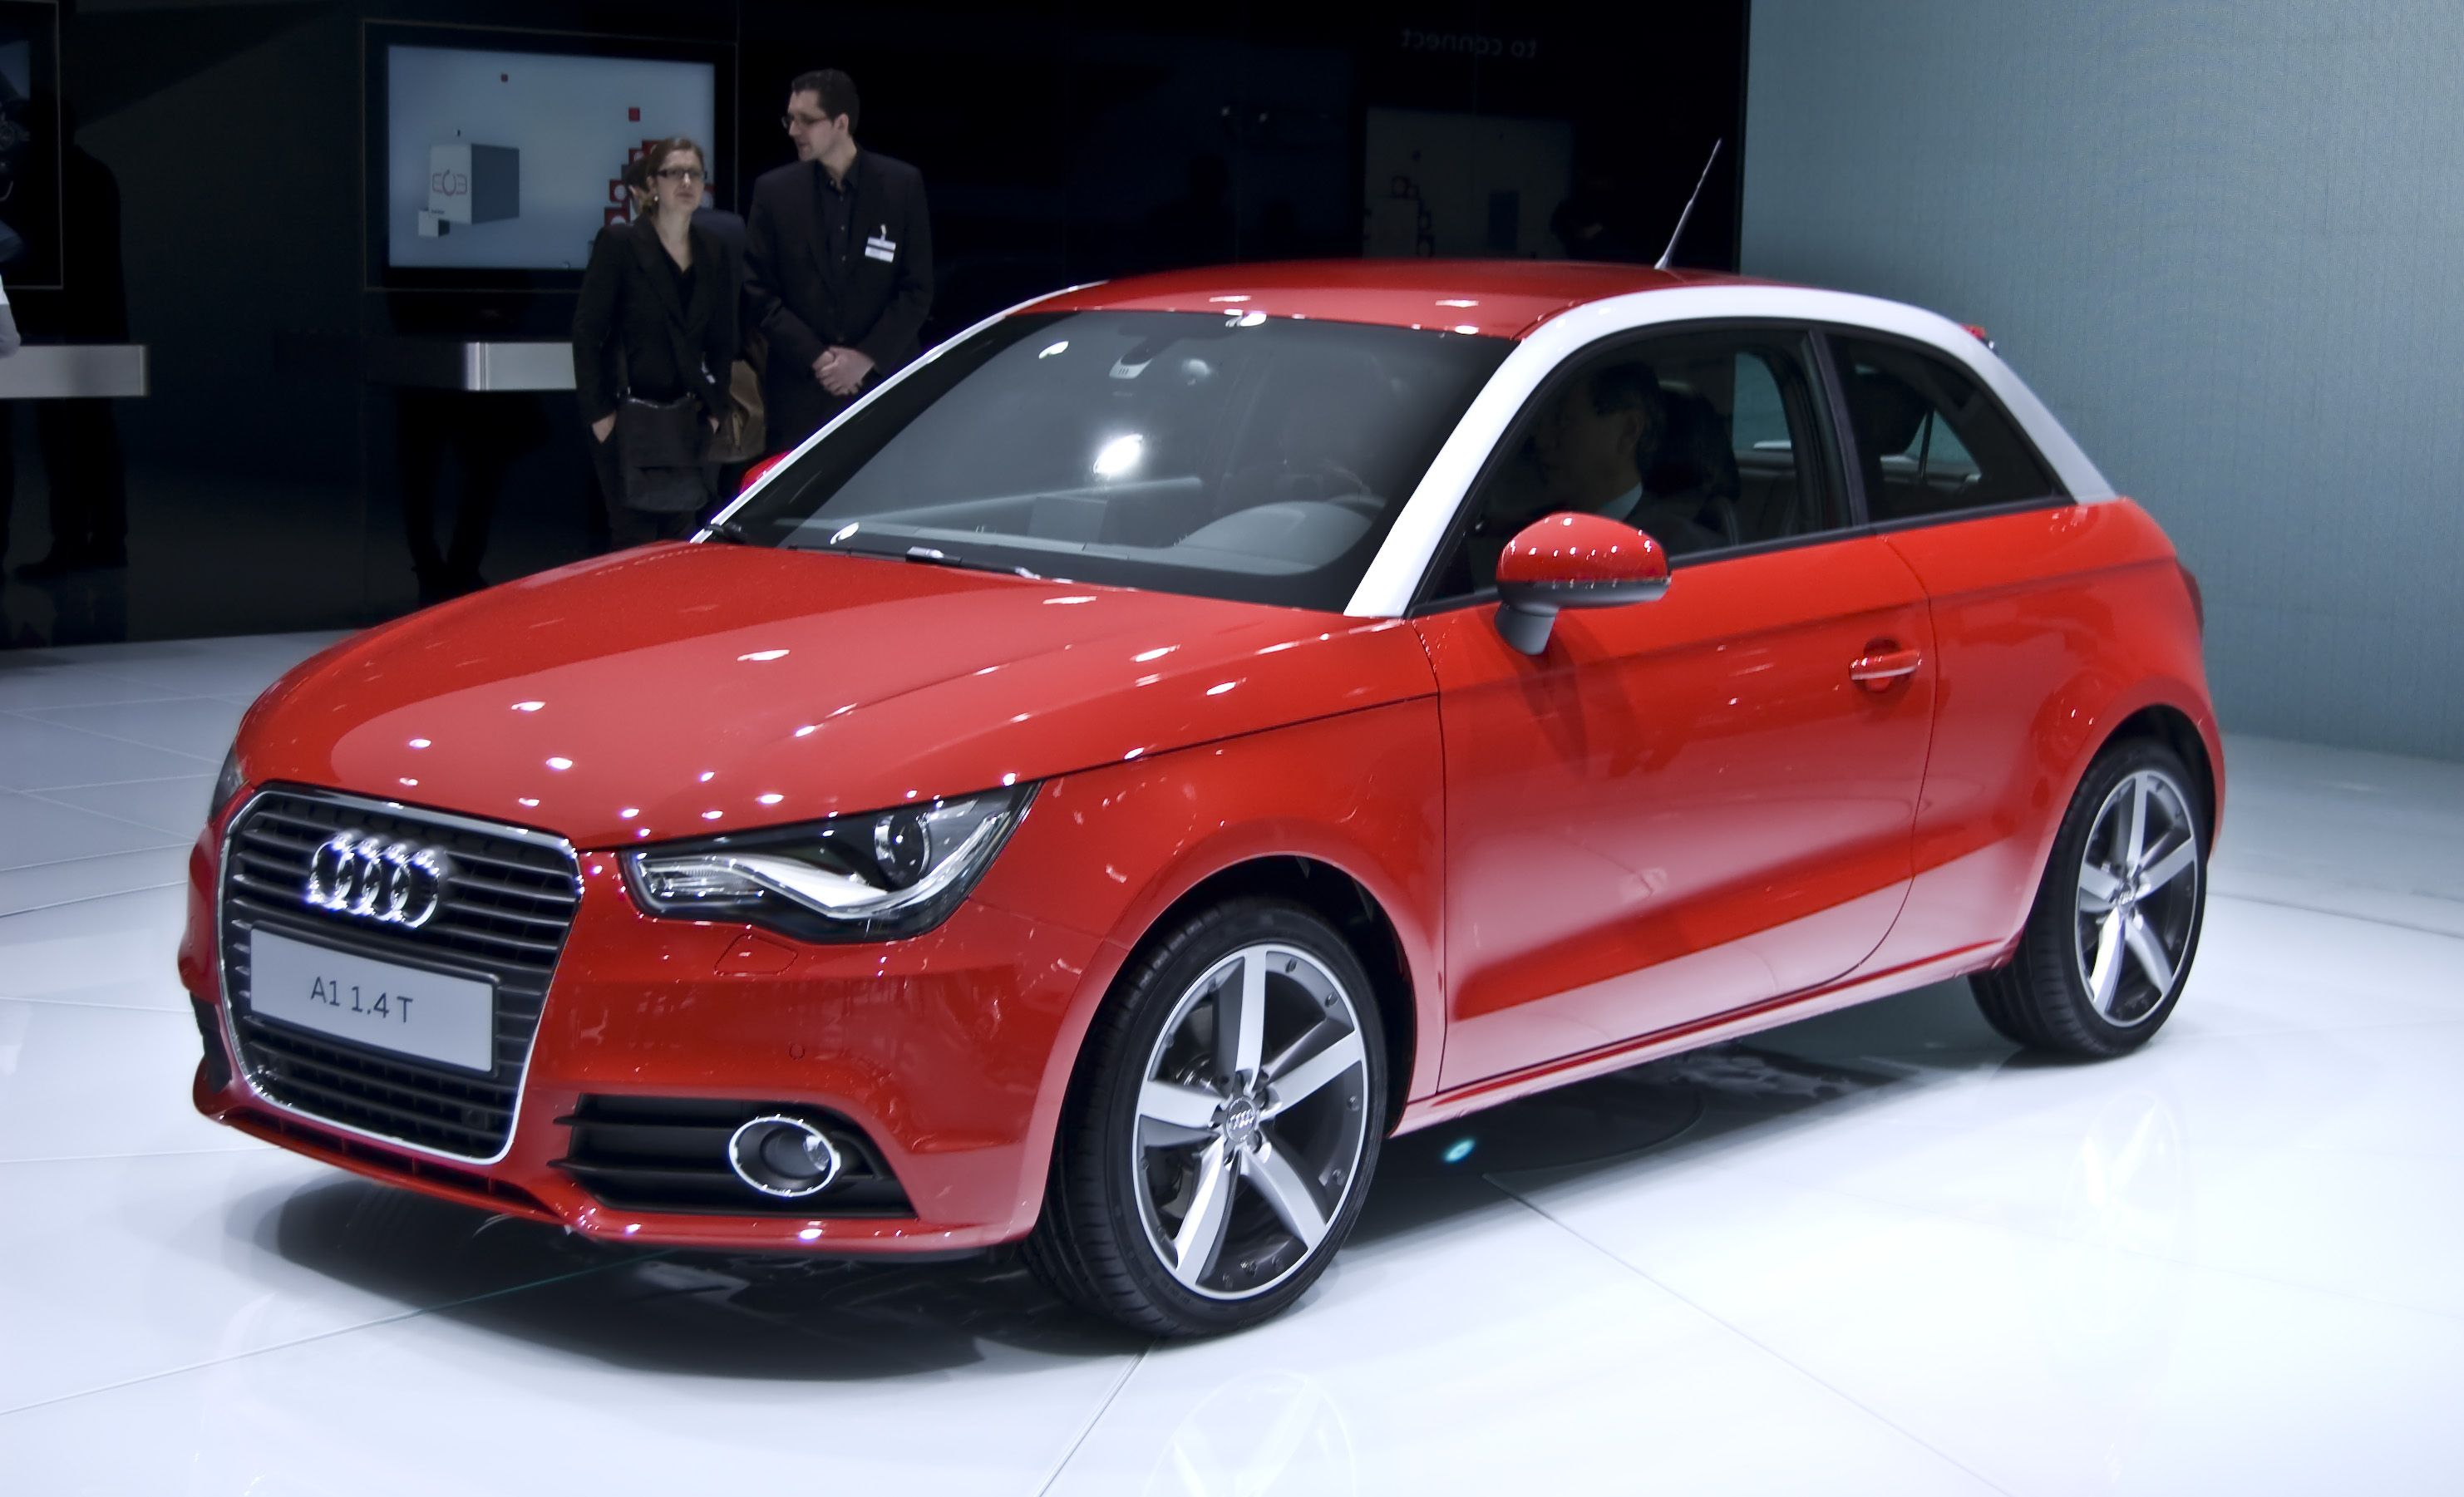 Red Rouge Audi A1 Awesome Cars Pinterest